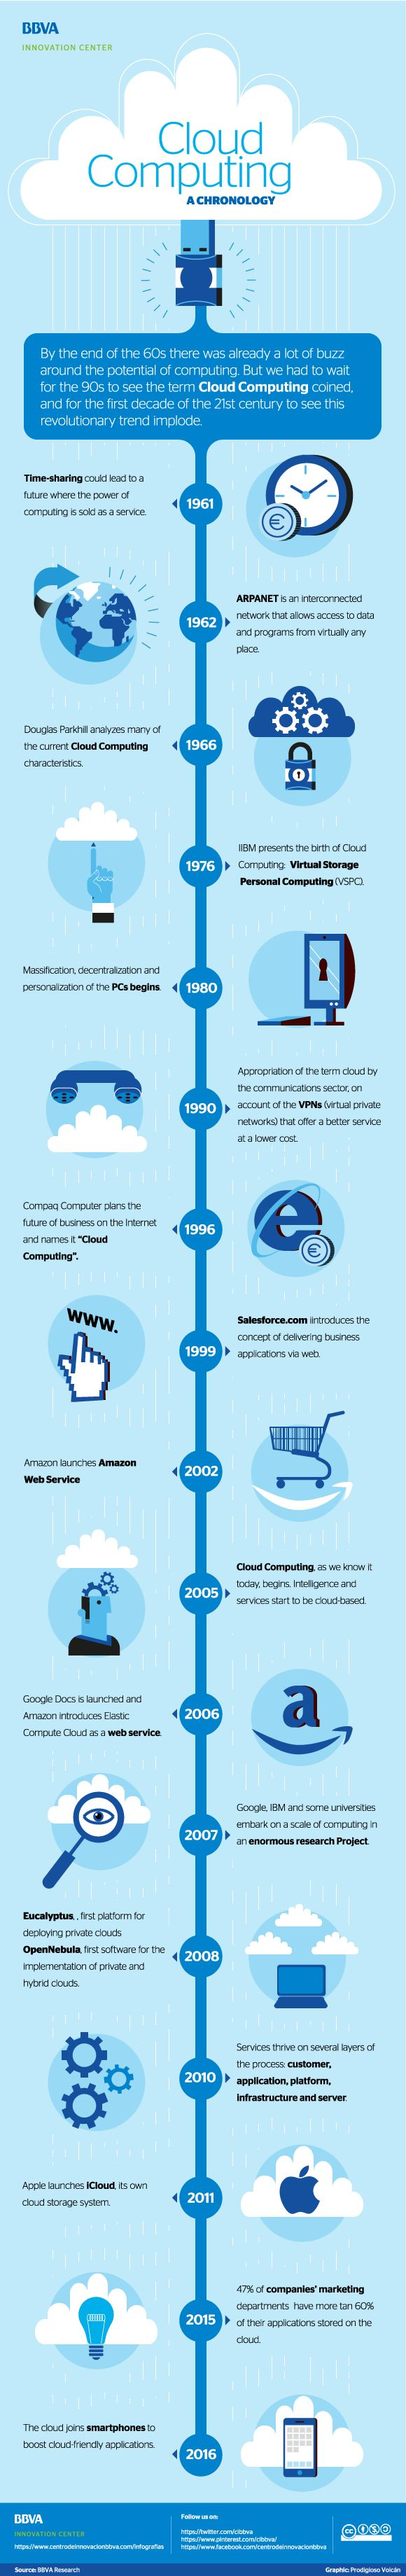 Infographic: BBVA Innovation Center - cloud computing, a chronology…http://www.netactivity.us/blog/look-where-the-future-of-internet-security-is-heading-to/